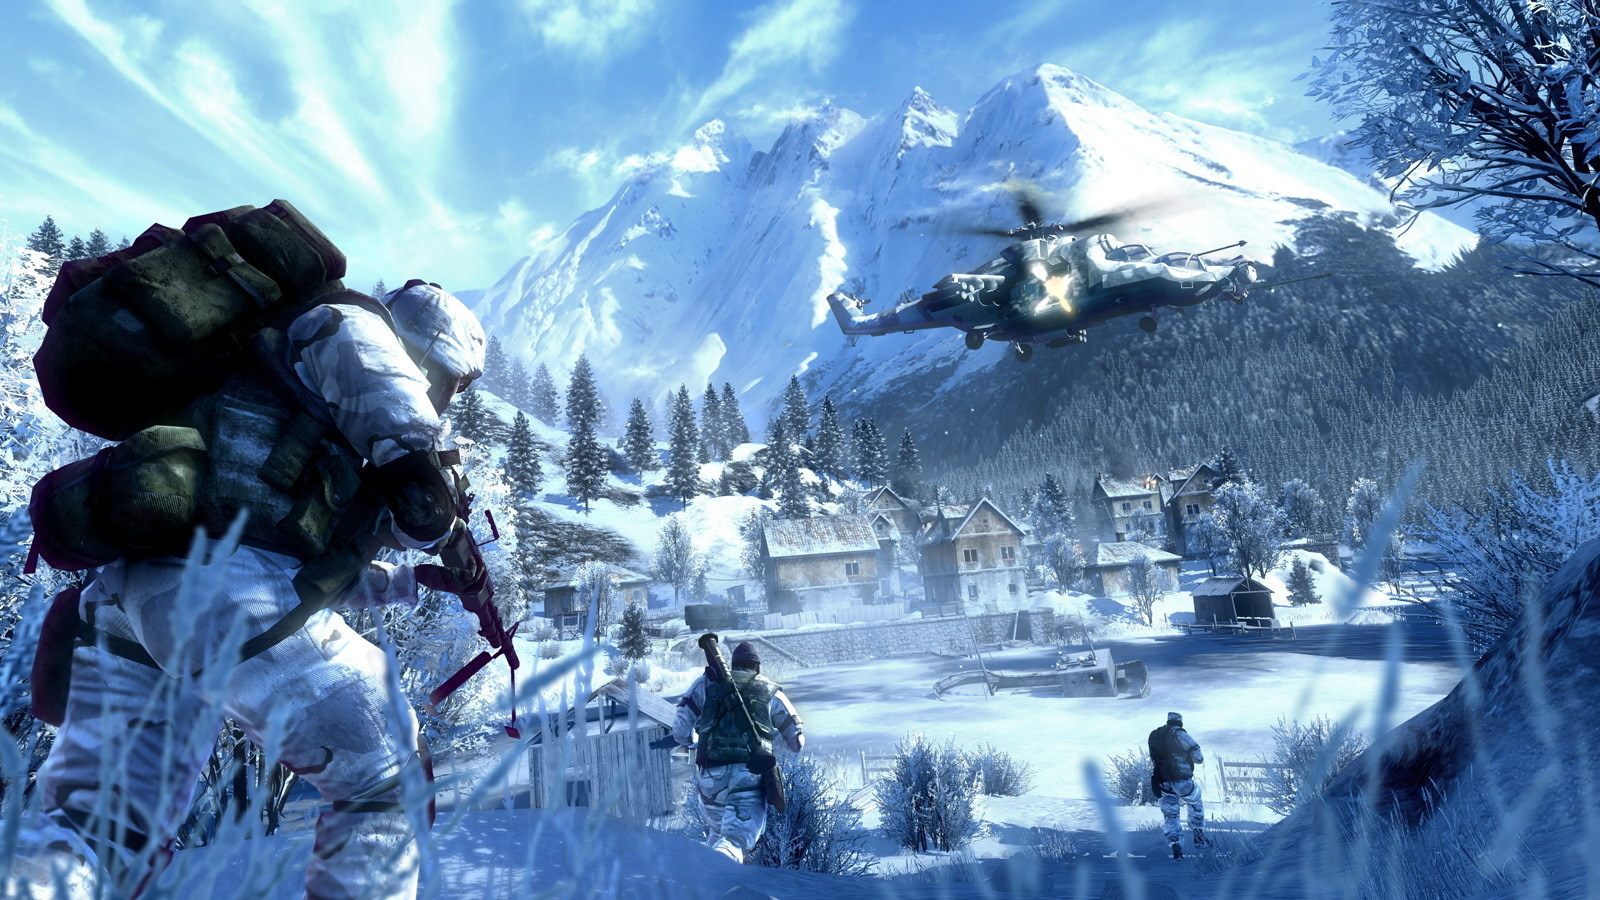 Battlefield bad company wallpaper - photo#16